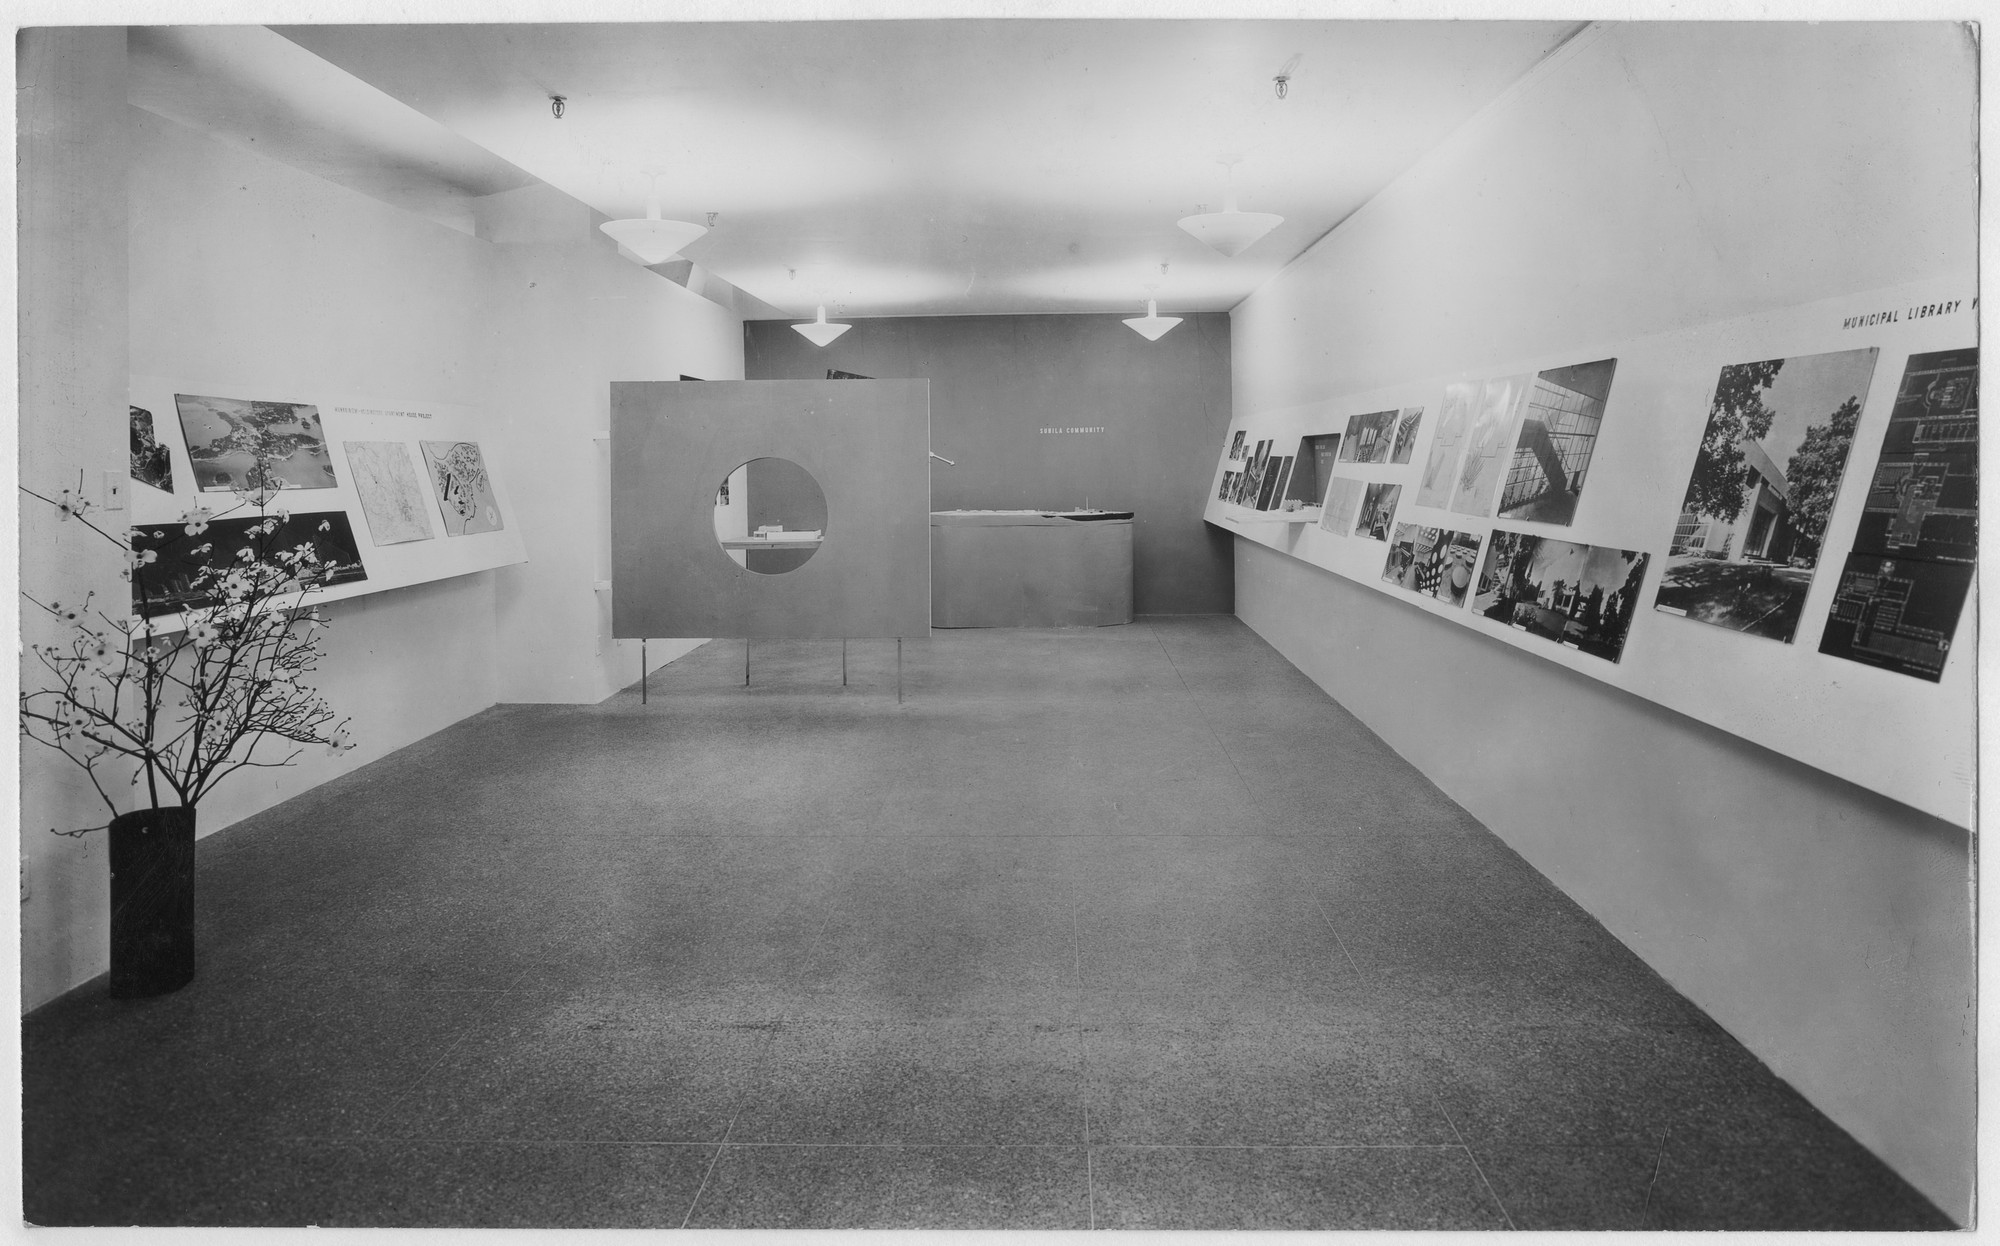 "Installation view of the exhibition, ""Alvar Aalto:  Architecture and Furniture"" March 15, 1938–April 18, 1938. Photographic Archive. The Museum of Modern Art Archives, New York. IN75.1. Photograph by Soichi Sunami."